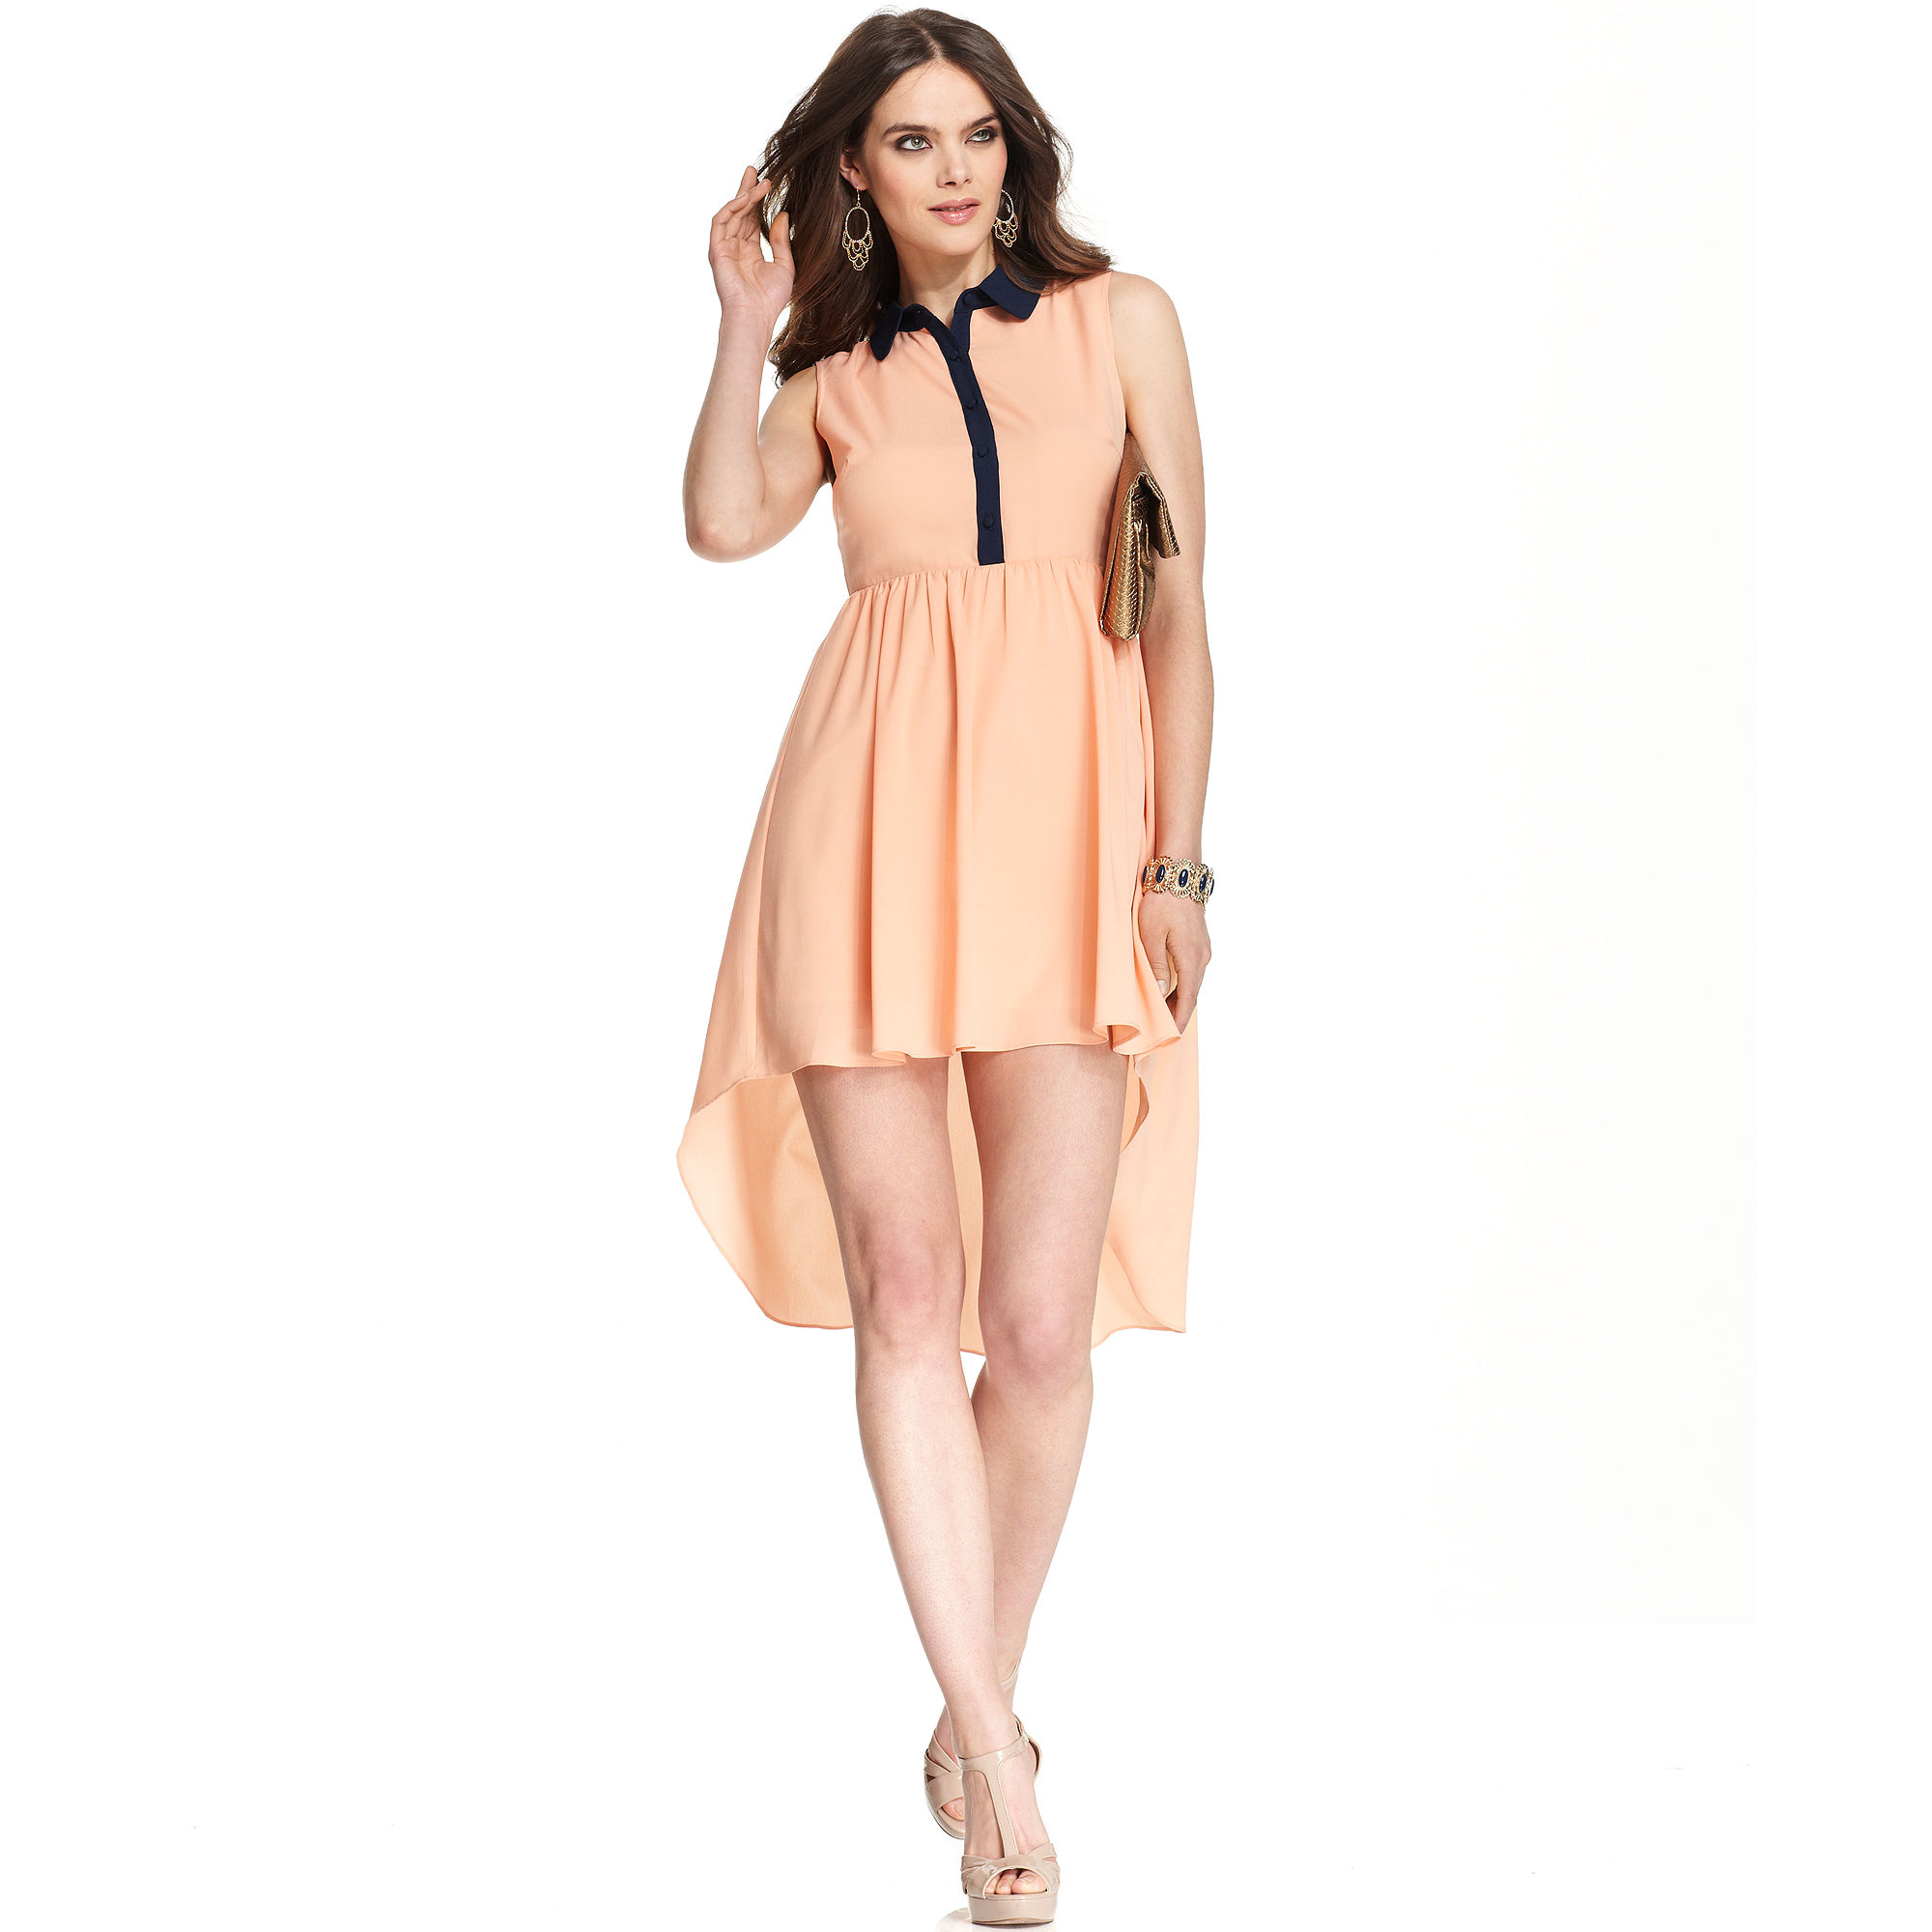 Mm couture sleeveless high low a line dress in pink peach for High couture dresses